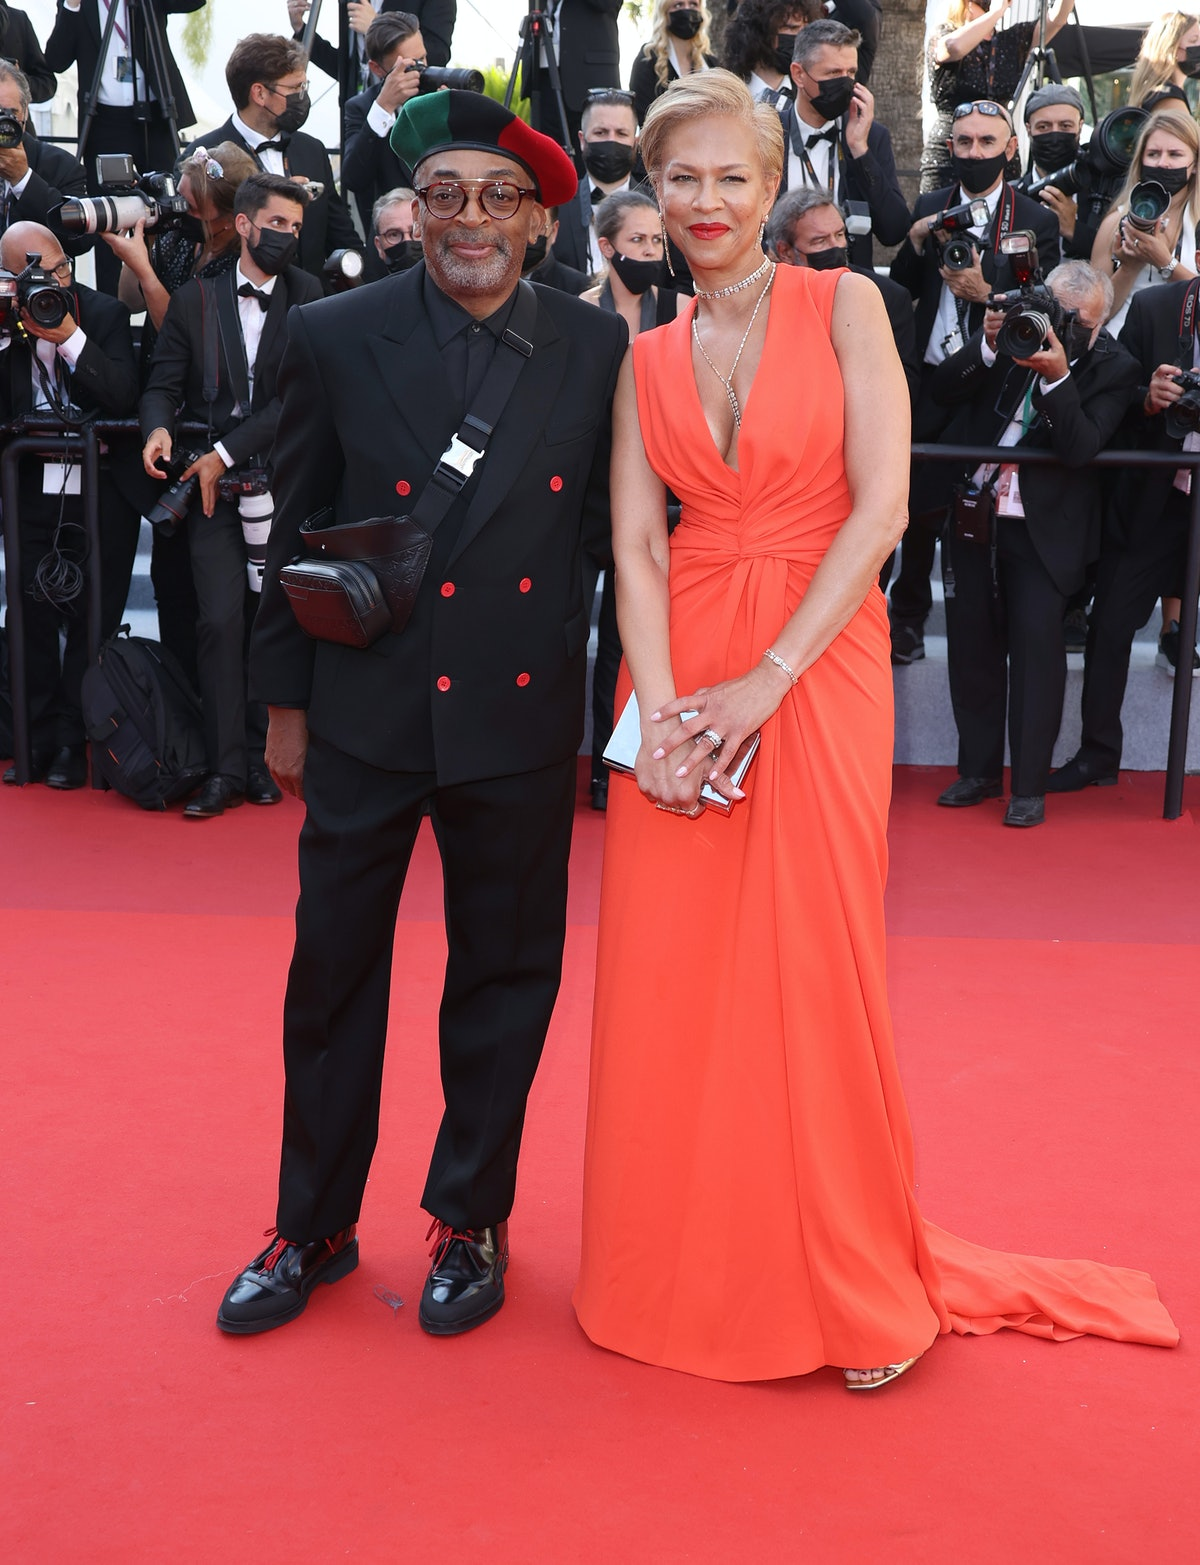 """CANNES, FRANCE - JULY 09: Spike Lee and Tonya Lewis Lee attend the """"Benedetta"""" screening during the 74th annual Cannes Film Festival on July 09, 2021 in Cannes, France. (Photo by Mike Marsland/WireImage)"""